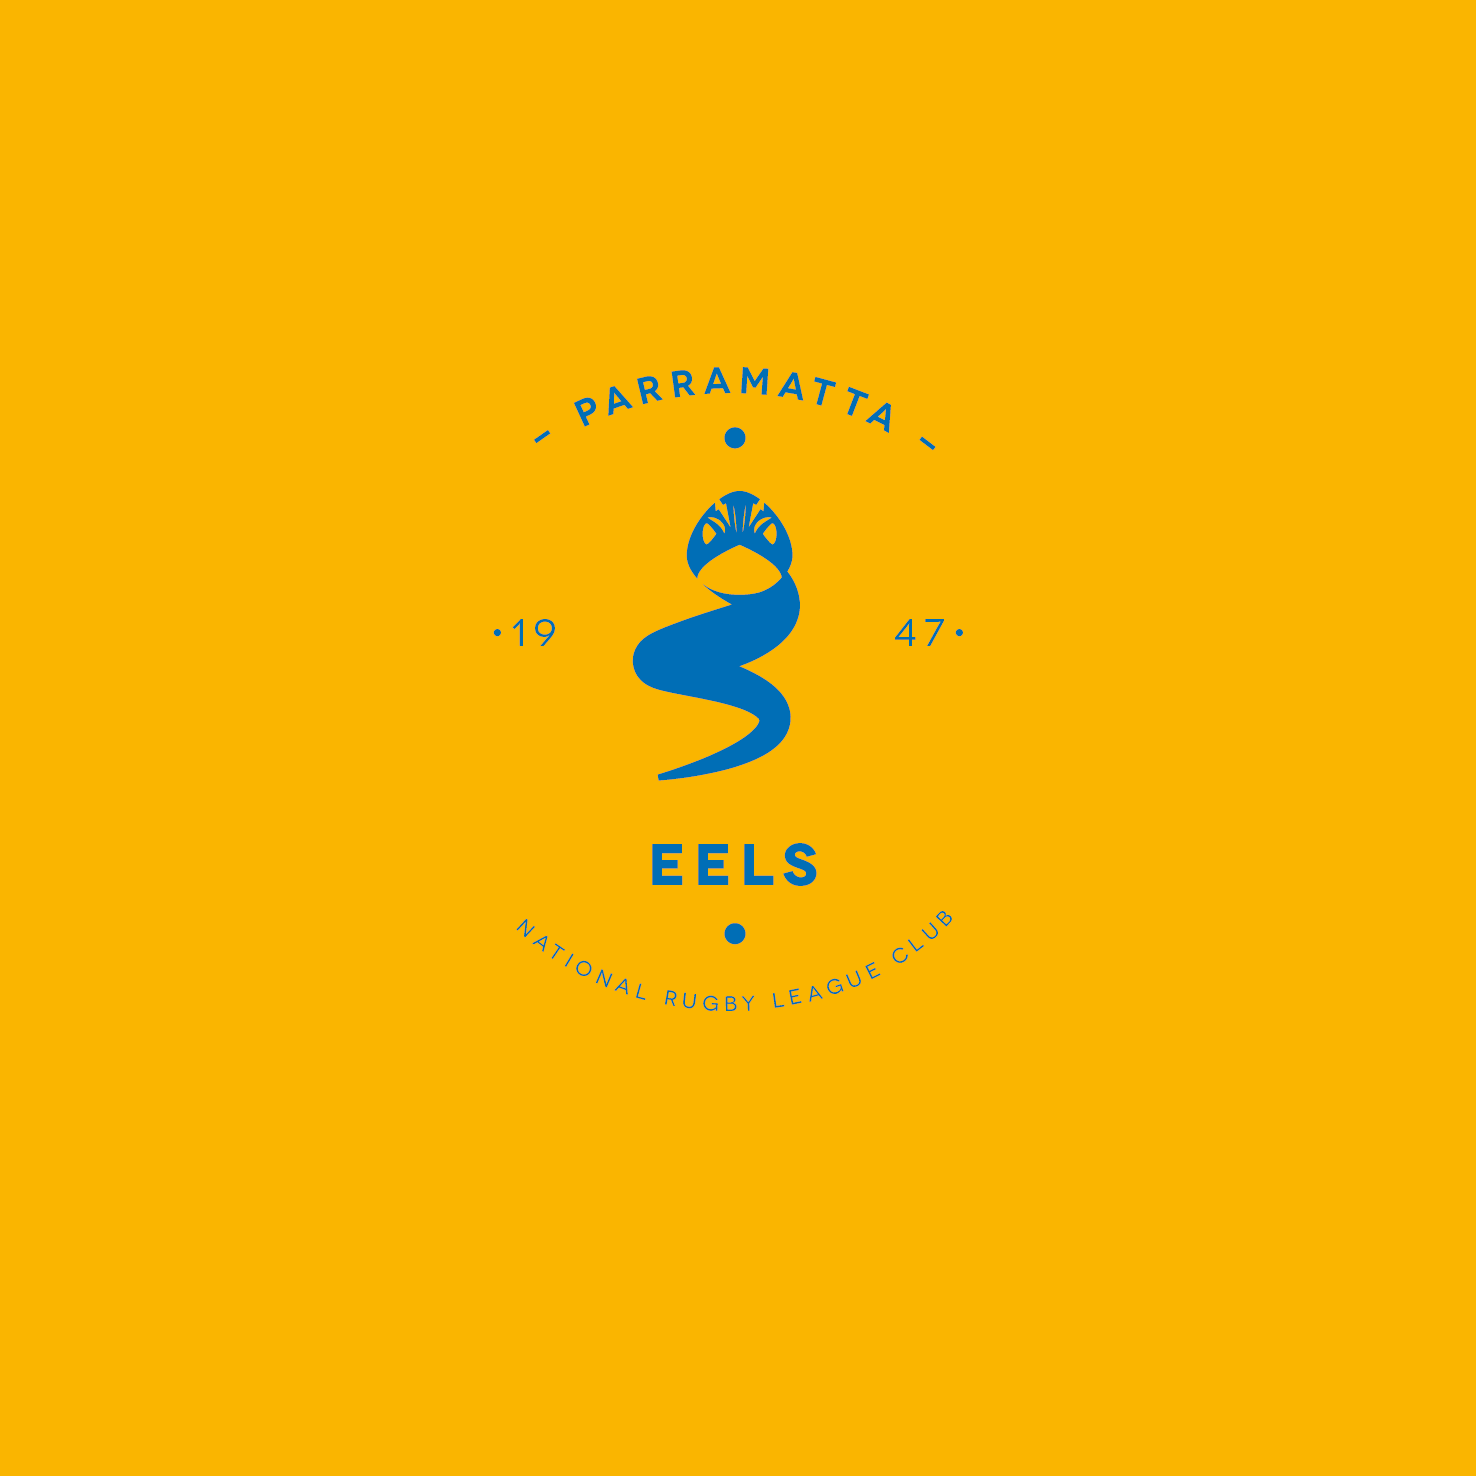 Parramatta Eels Logo Rugby League Rugby League Sport Gymnastics Olympic Games Sports